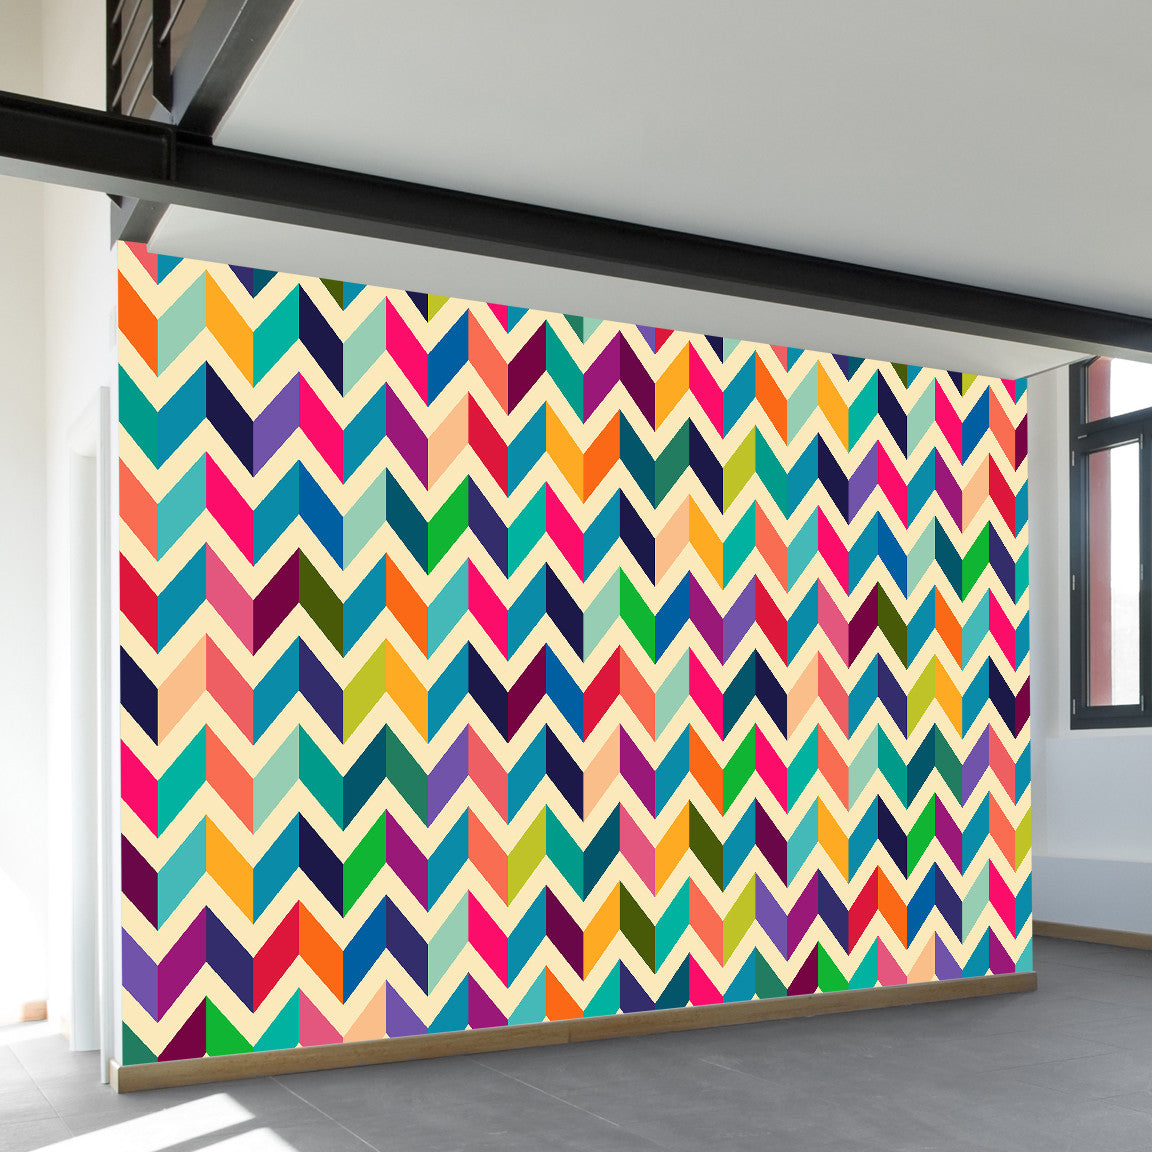 Dimensional Retro Wall Mural by Walls Need Loveᄄ